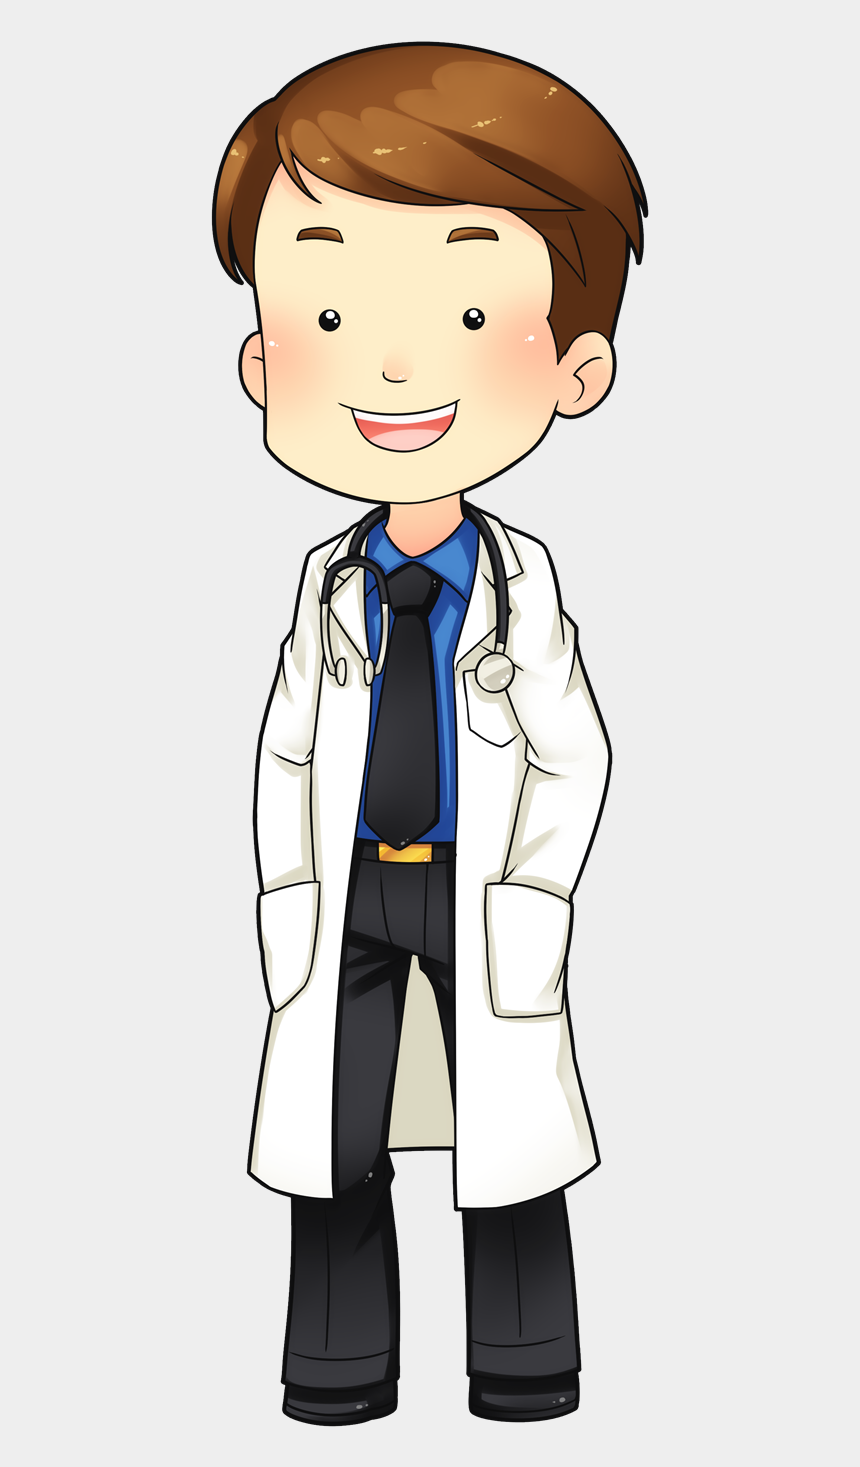 2017 clipart, Cartoons - Doctor Clipart - Cute Doctor Clipart